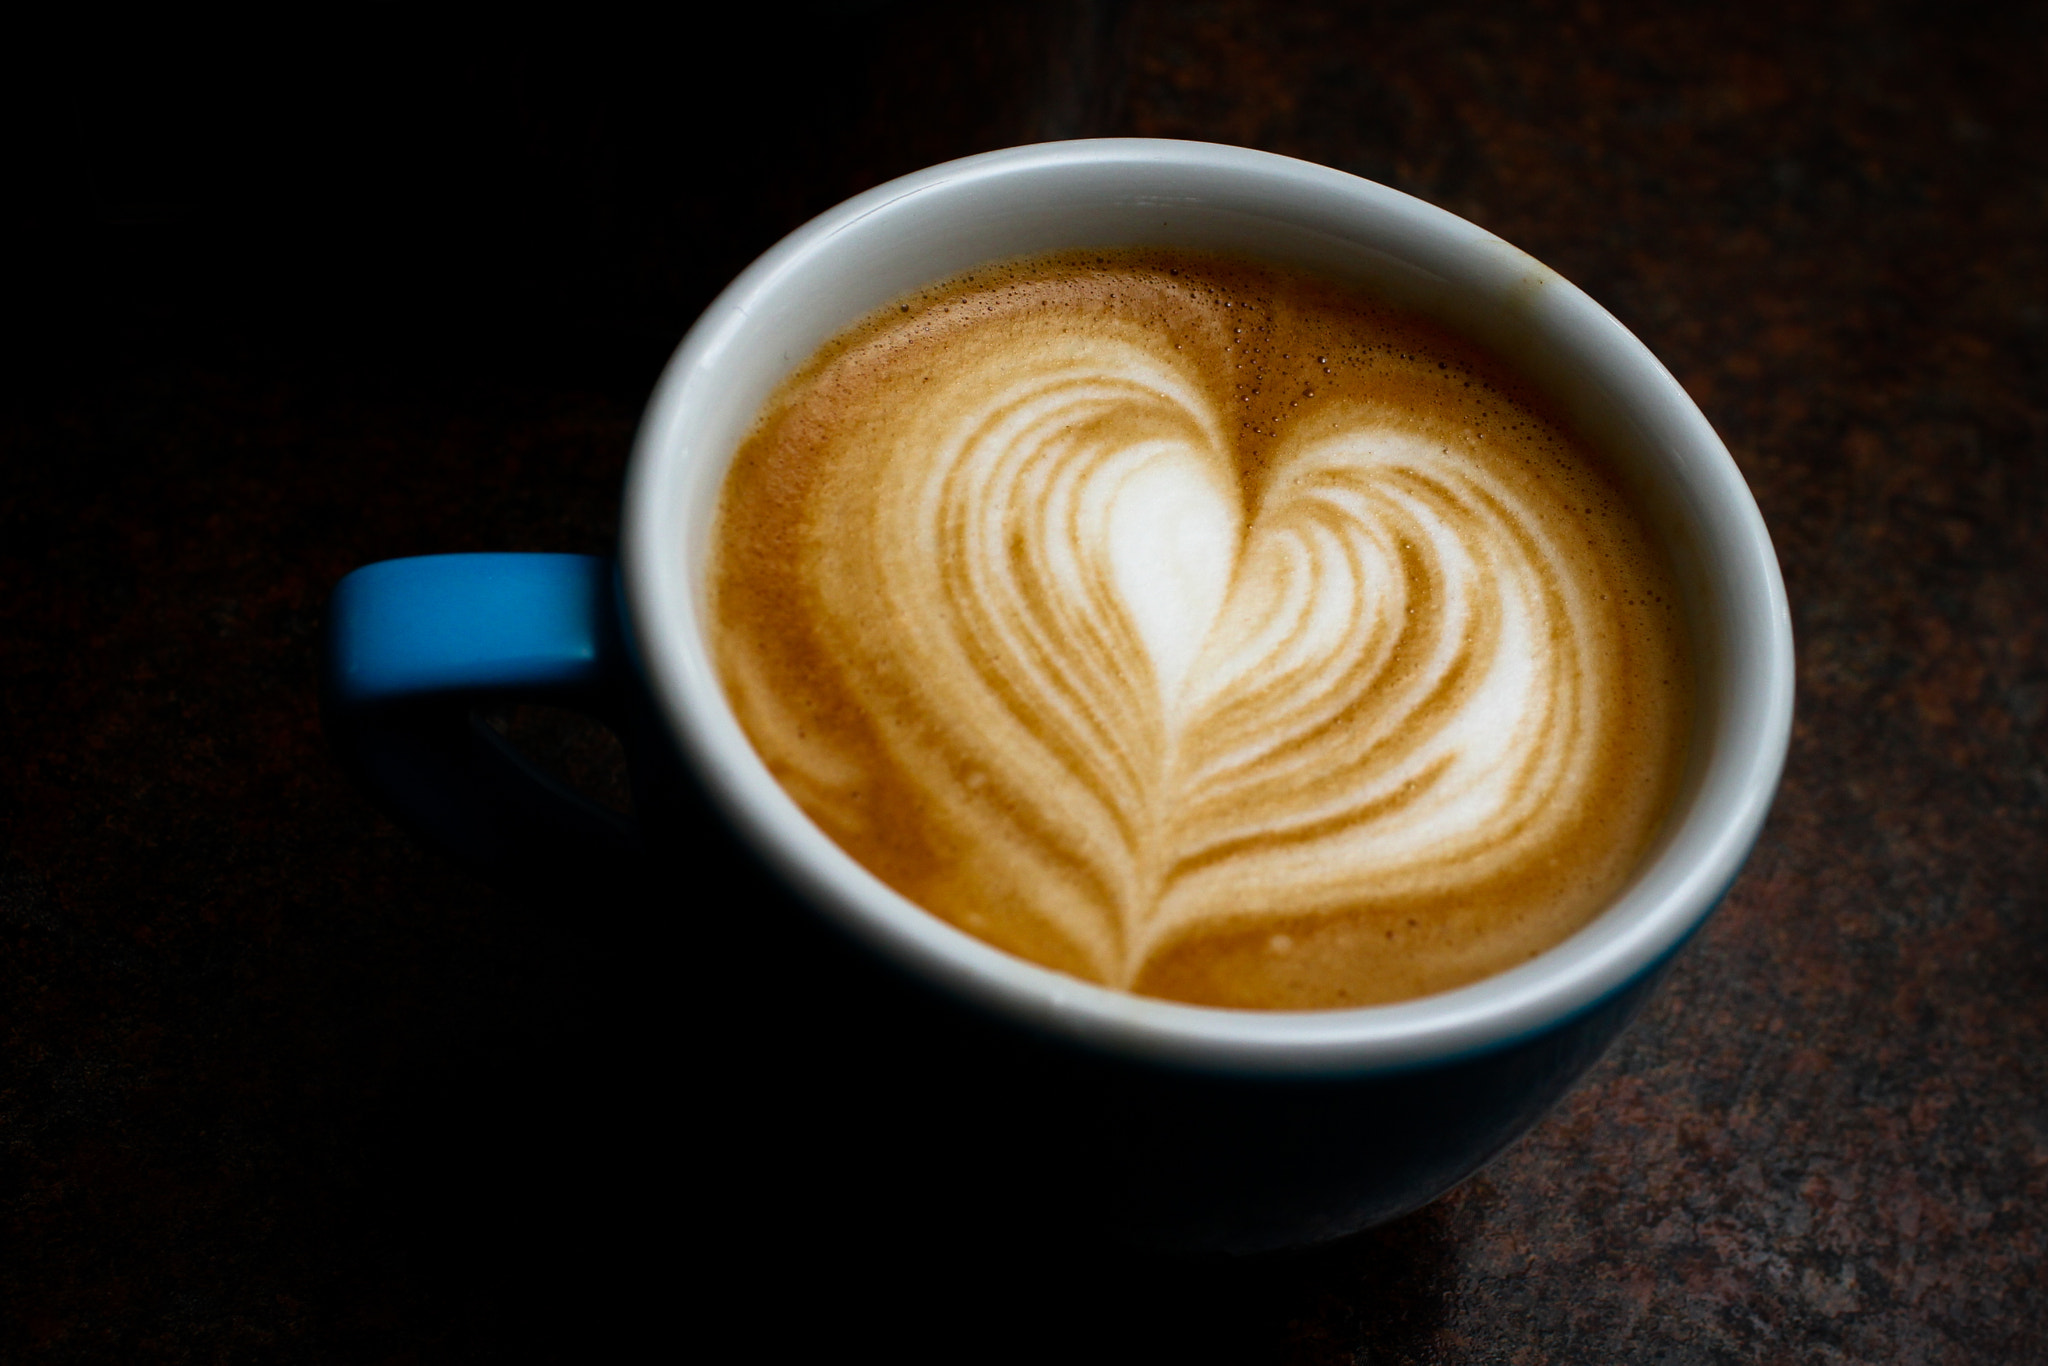 Photograph Cappuccino Milk Pattern by Mark Prince on 500px